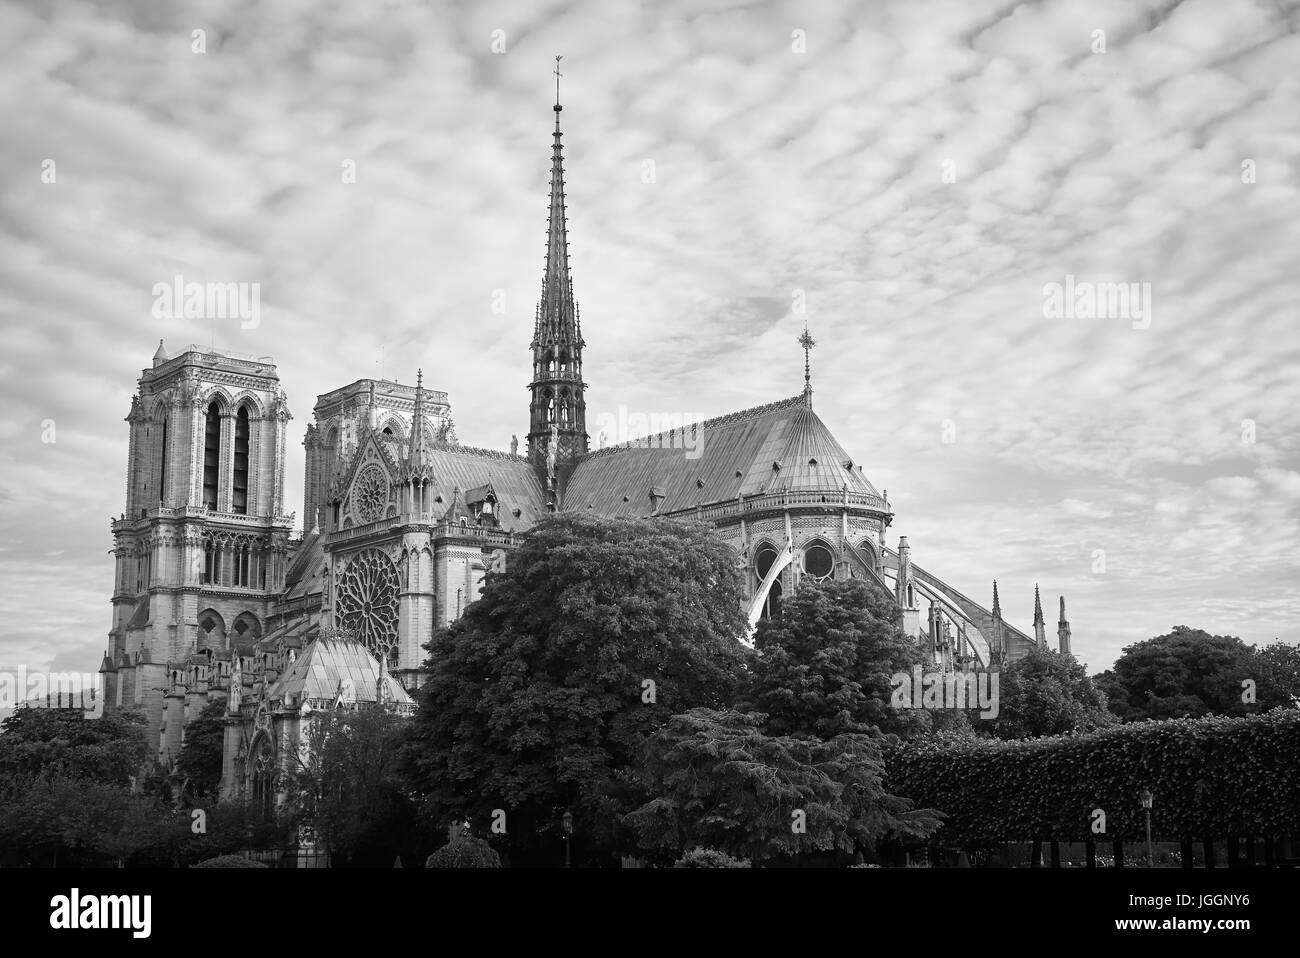 The Cathedral of Notre Dame, Paris, France - Stock Image